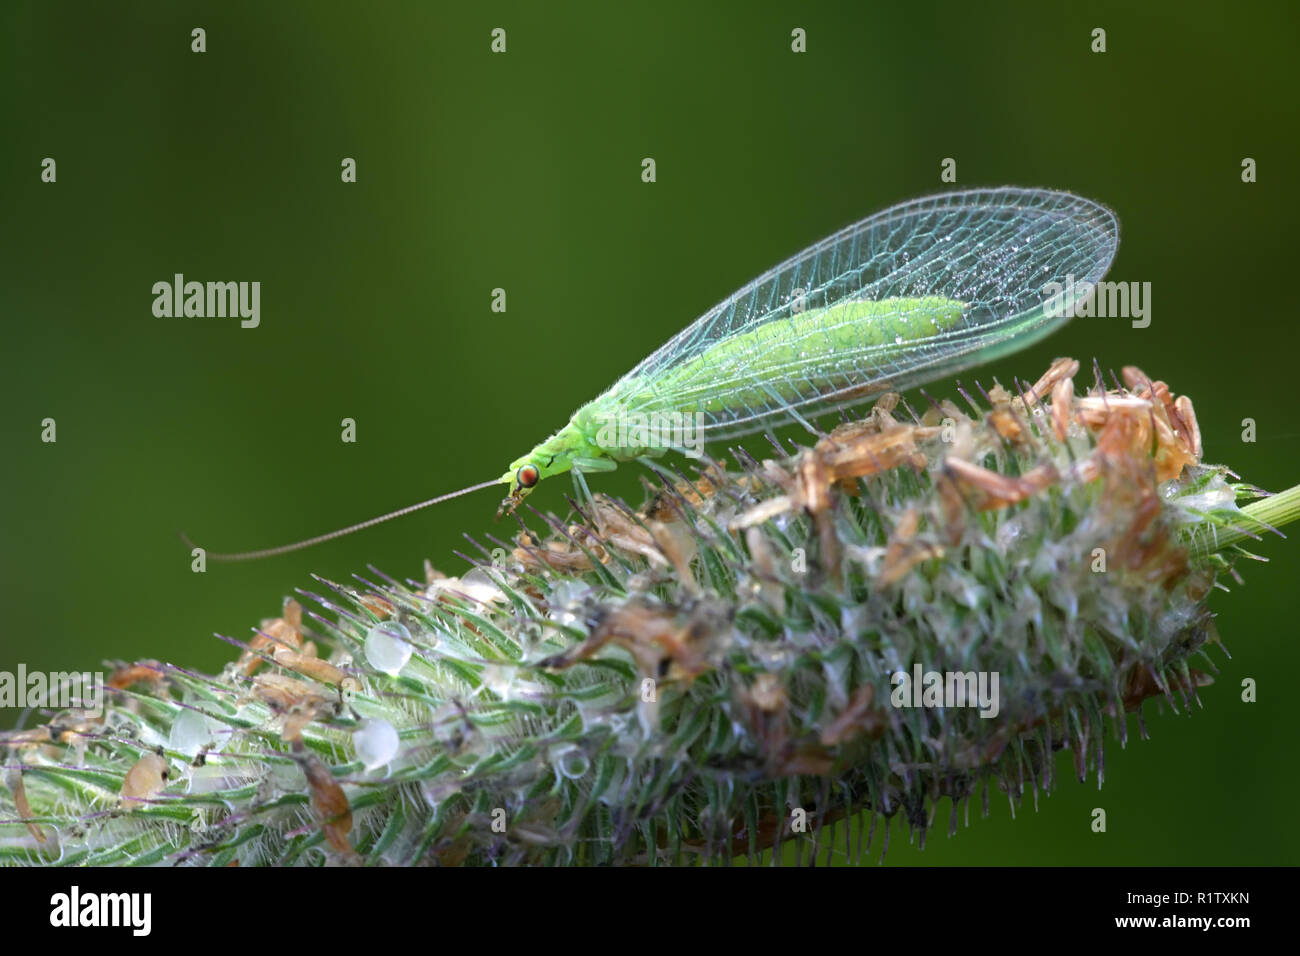 Common green lacewing, Chrysoperla carnea, beneficial predator of aphids - Stock Image